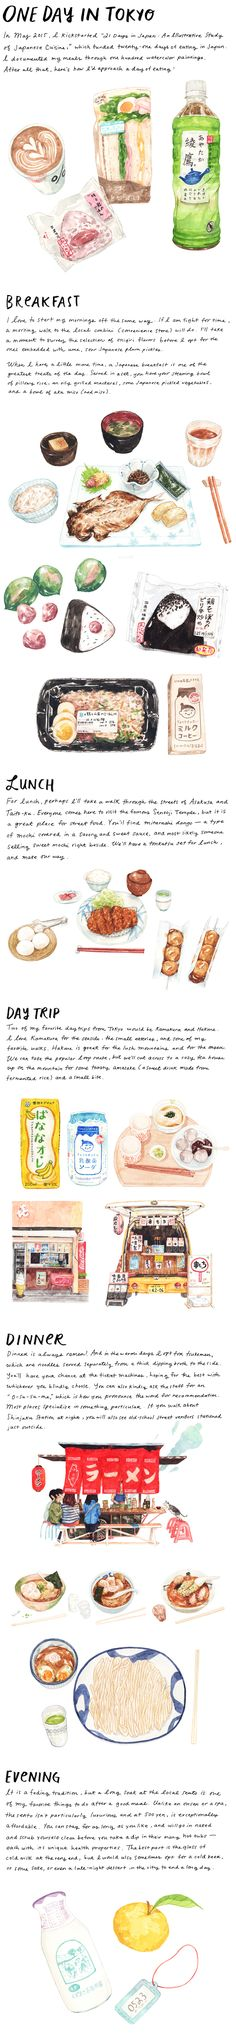 How to spend a day in Tokyo on Behance